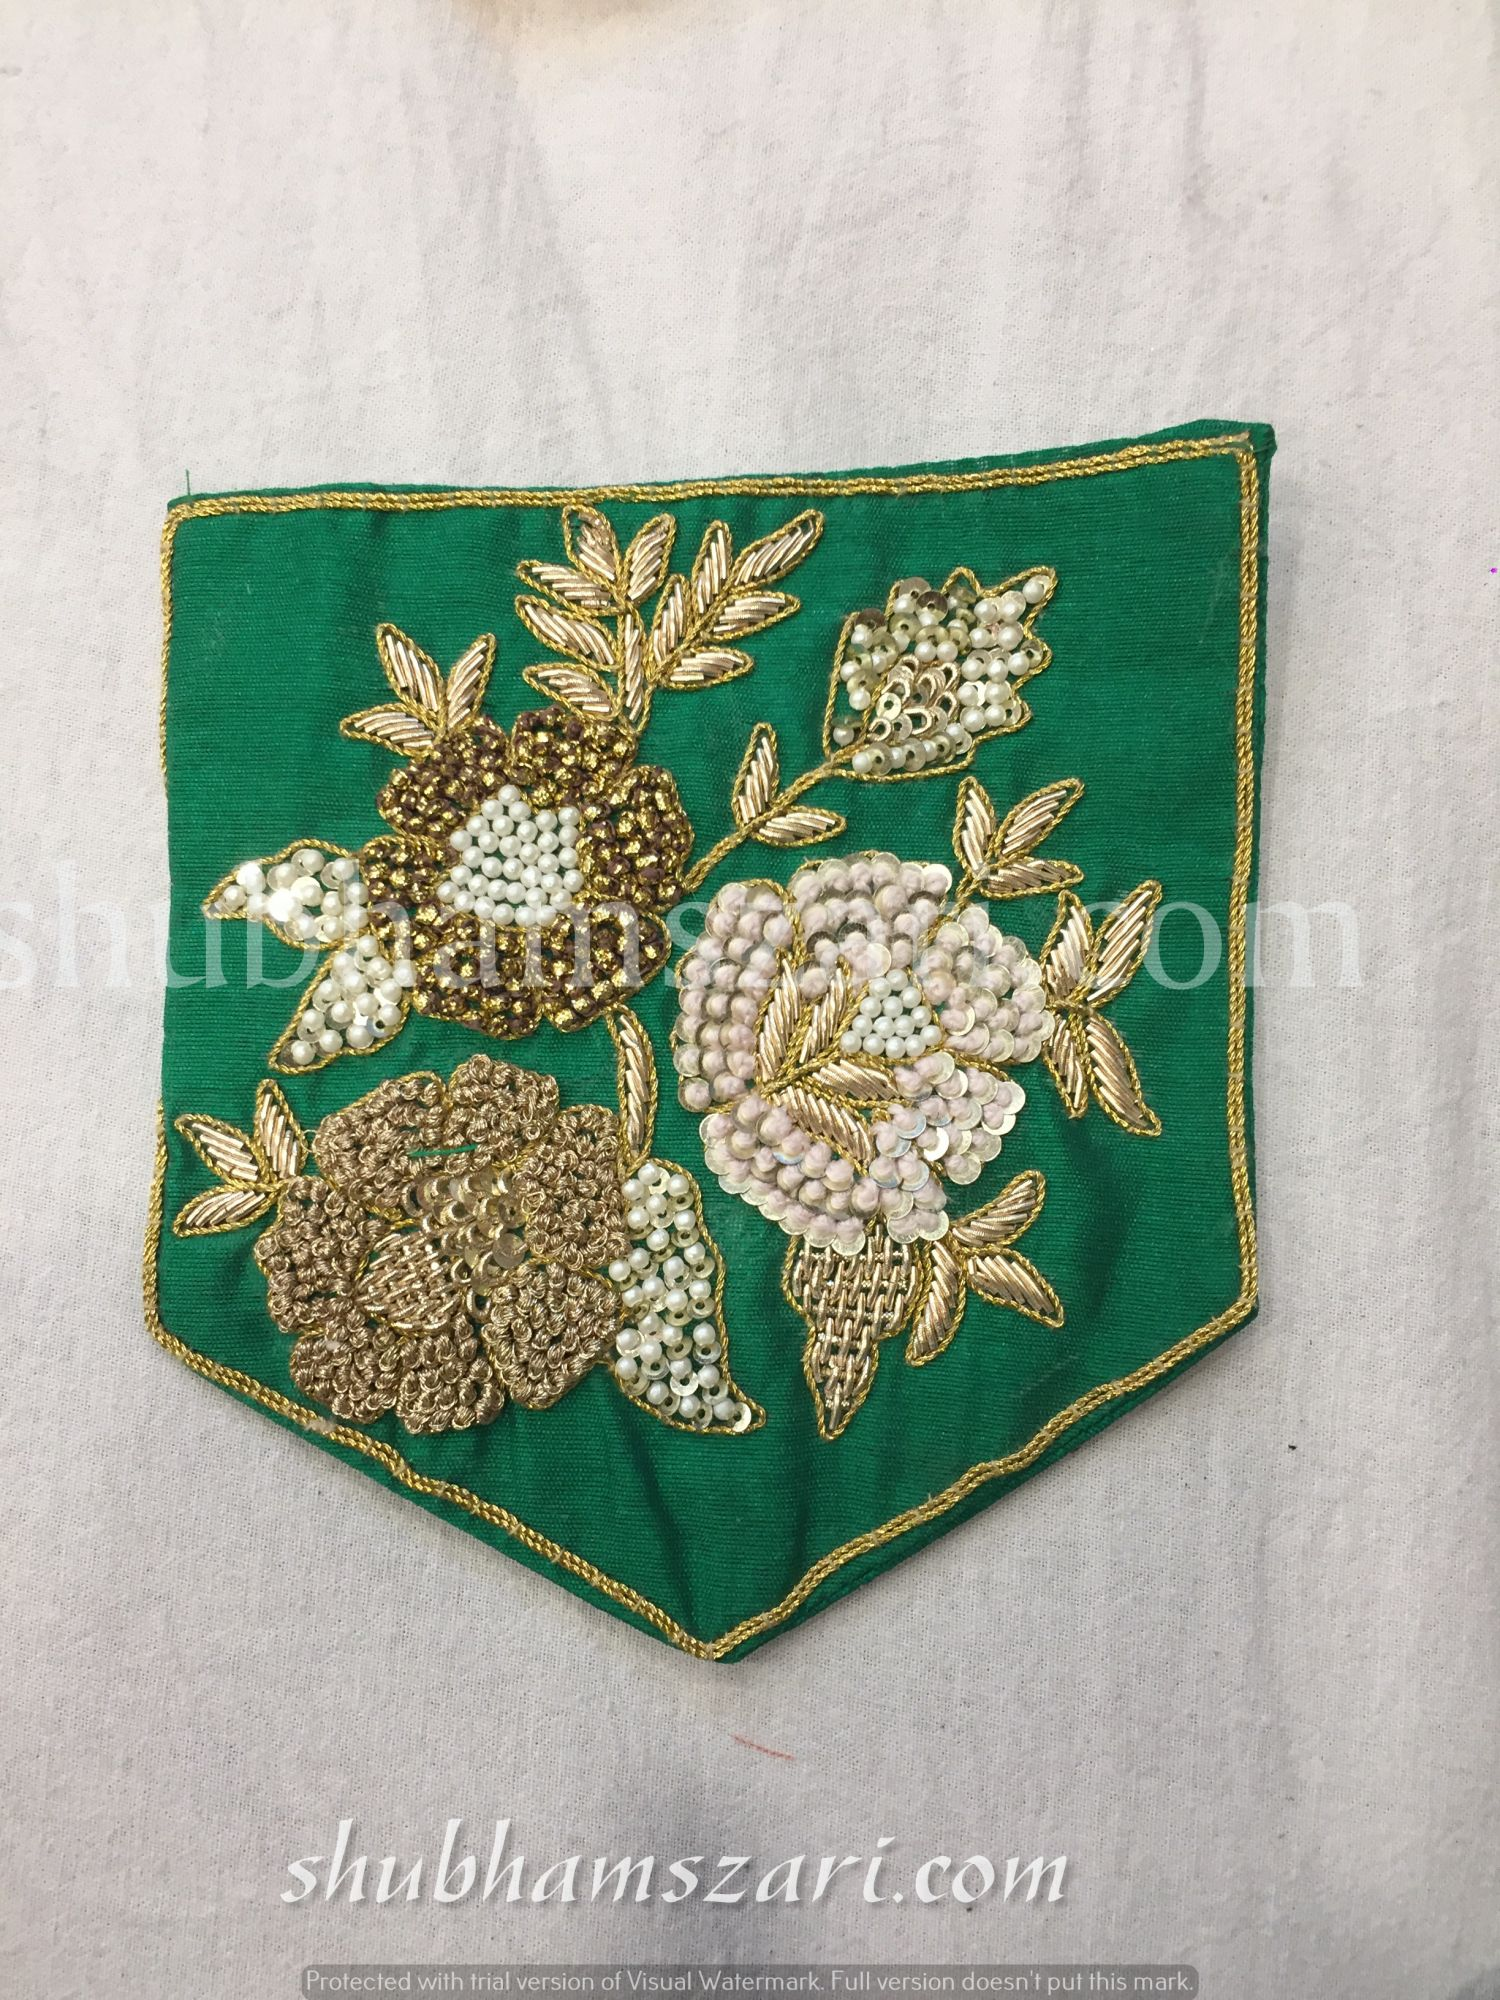 GREEN HAND CRAFTED KNOT ZARDOZI WORK POCKET FOR SUITS SHIRT||FOR GIFTING||PATCH||CLOTH DECORATED||APPLIQUE